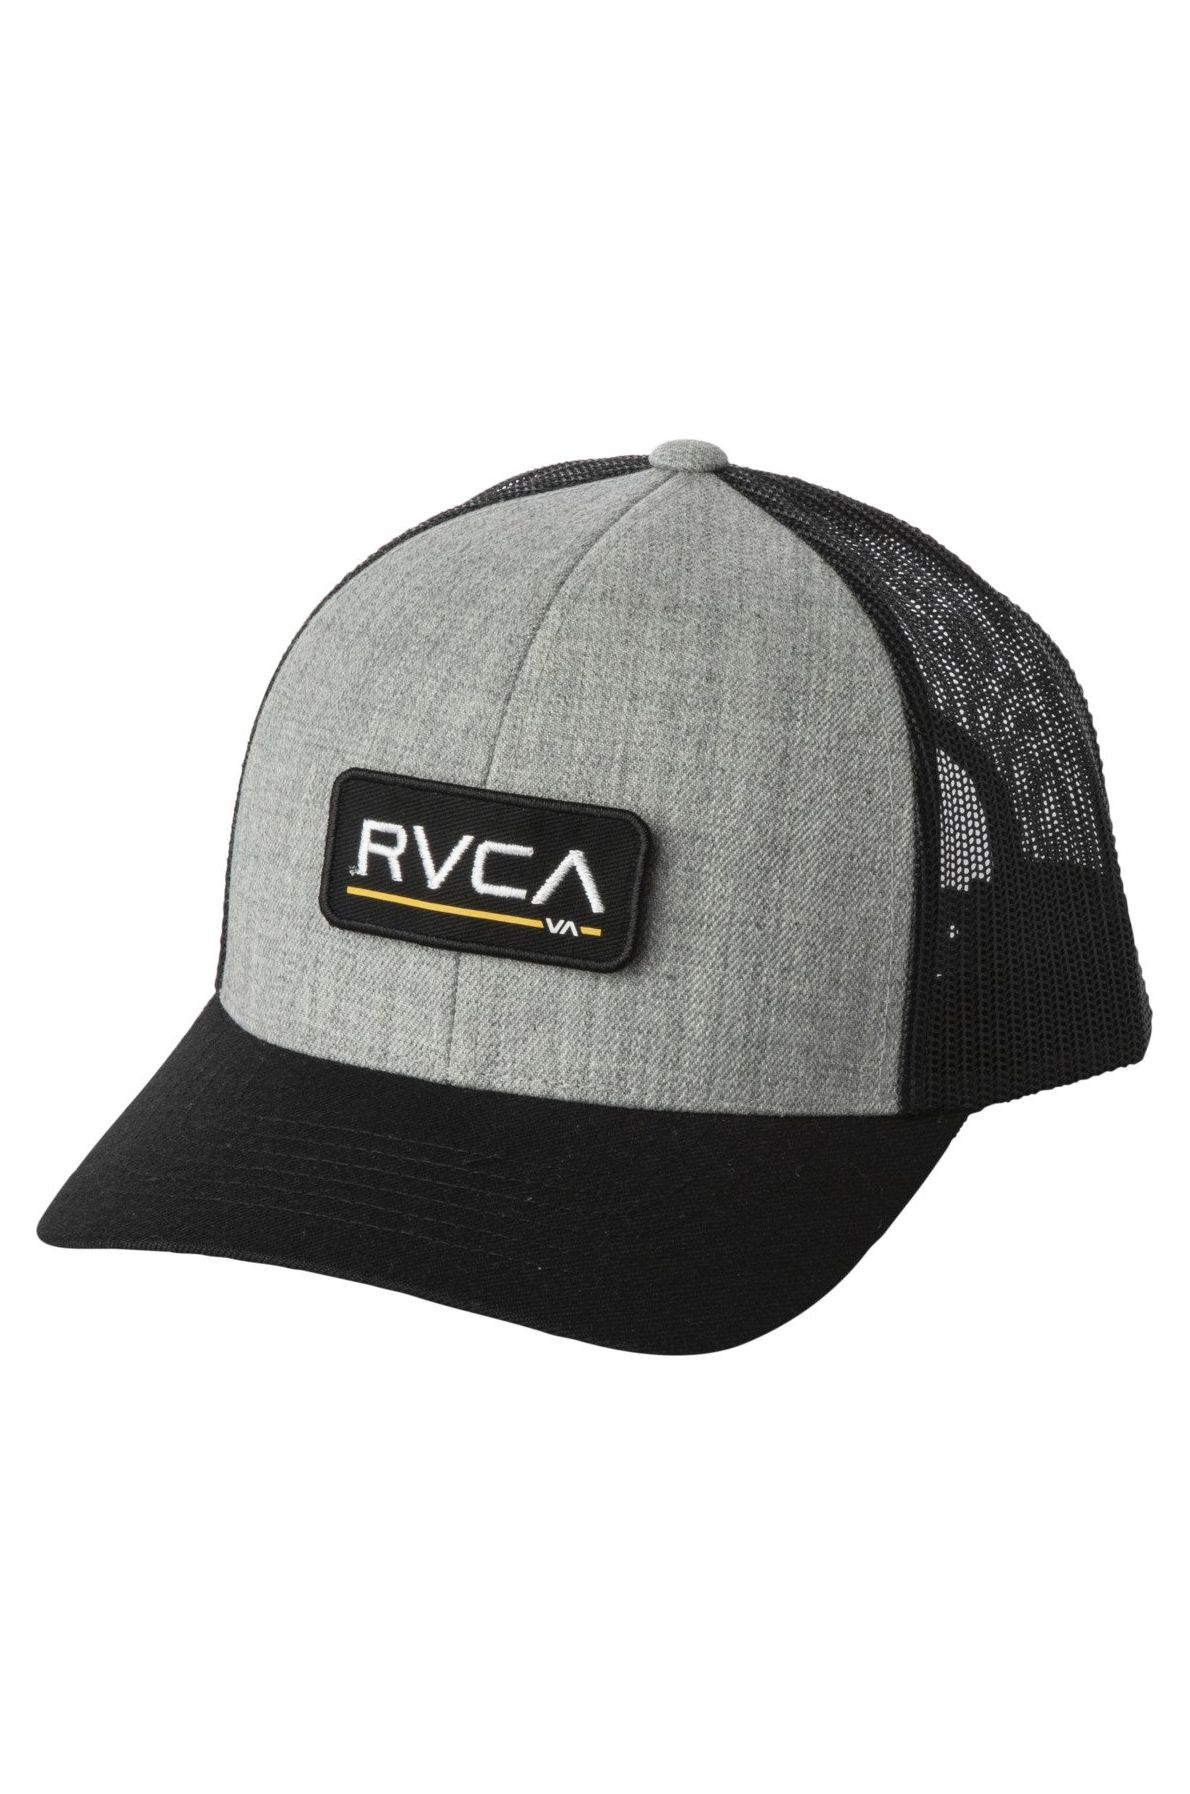 Bone RVCA TICKET TRUCKER III Hthr Grey/Black